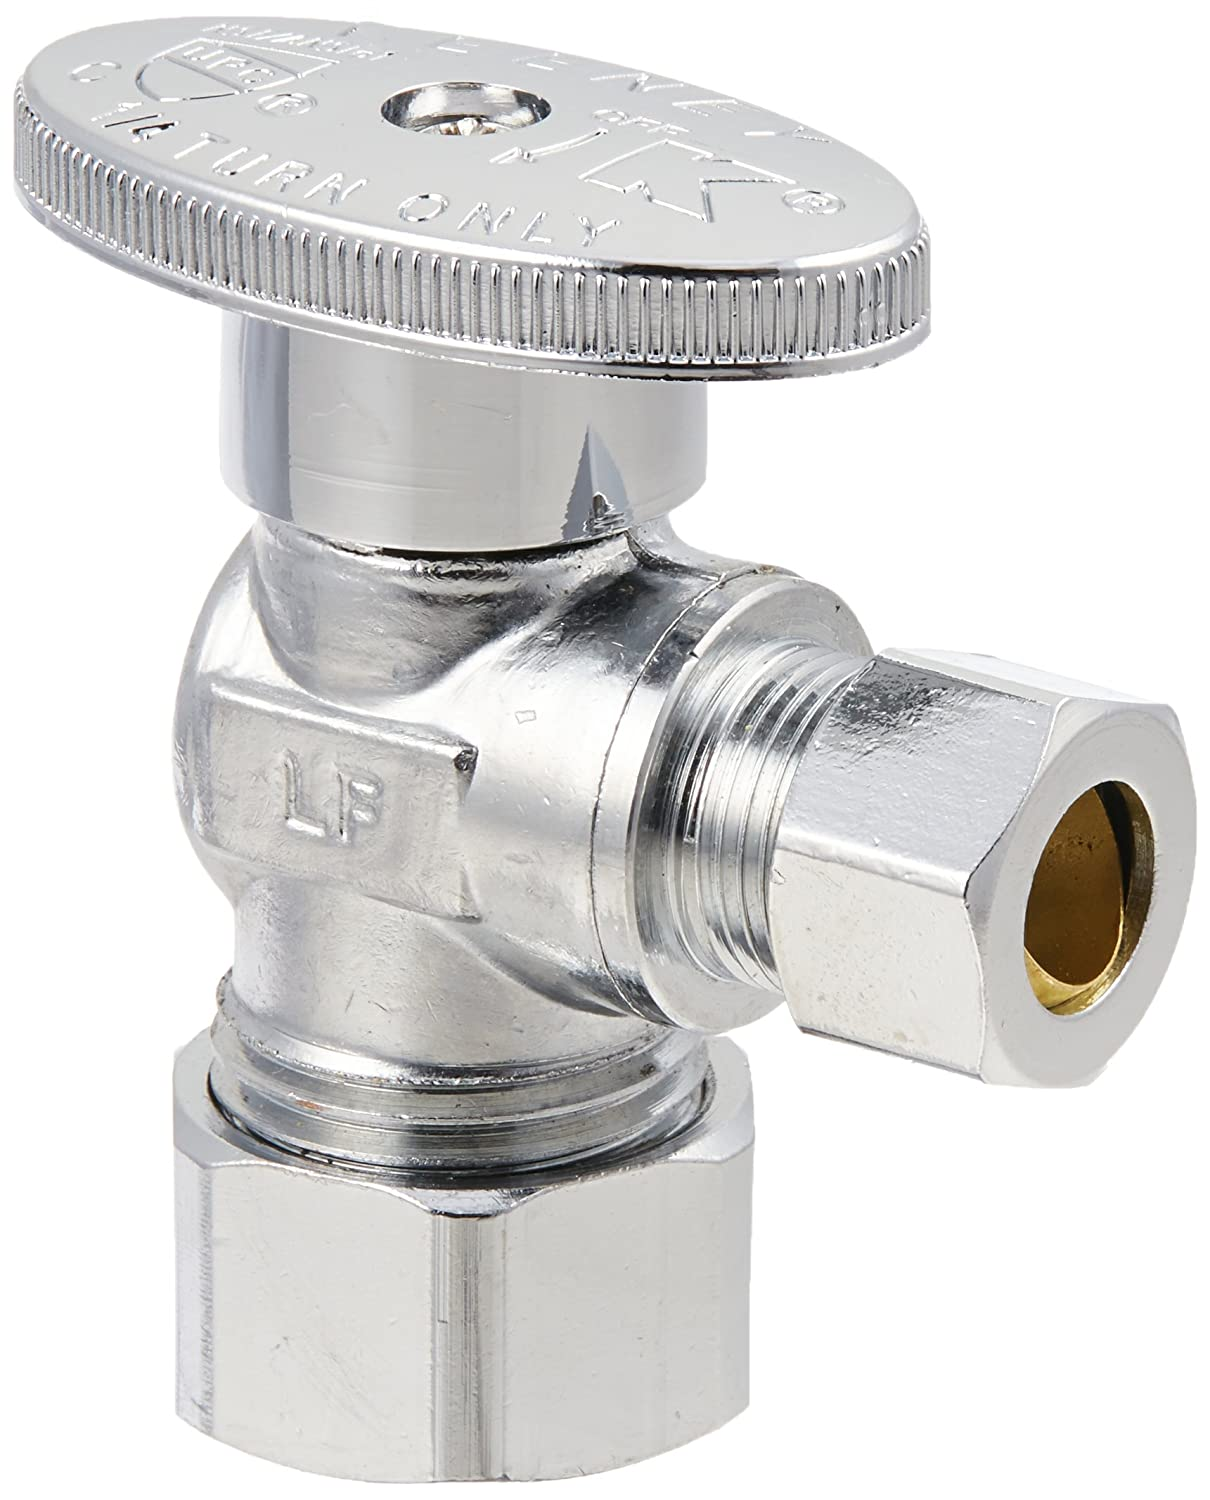 QUARTER ANGLE VALVE 5//8 COARSE THD INLET X 3//8OD OUT LEAD FRE Keeney Manufacturing K2659PCLF